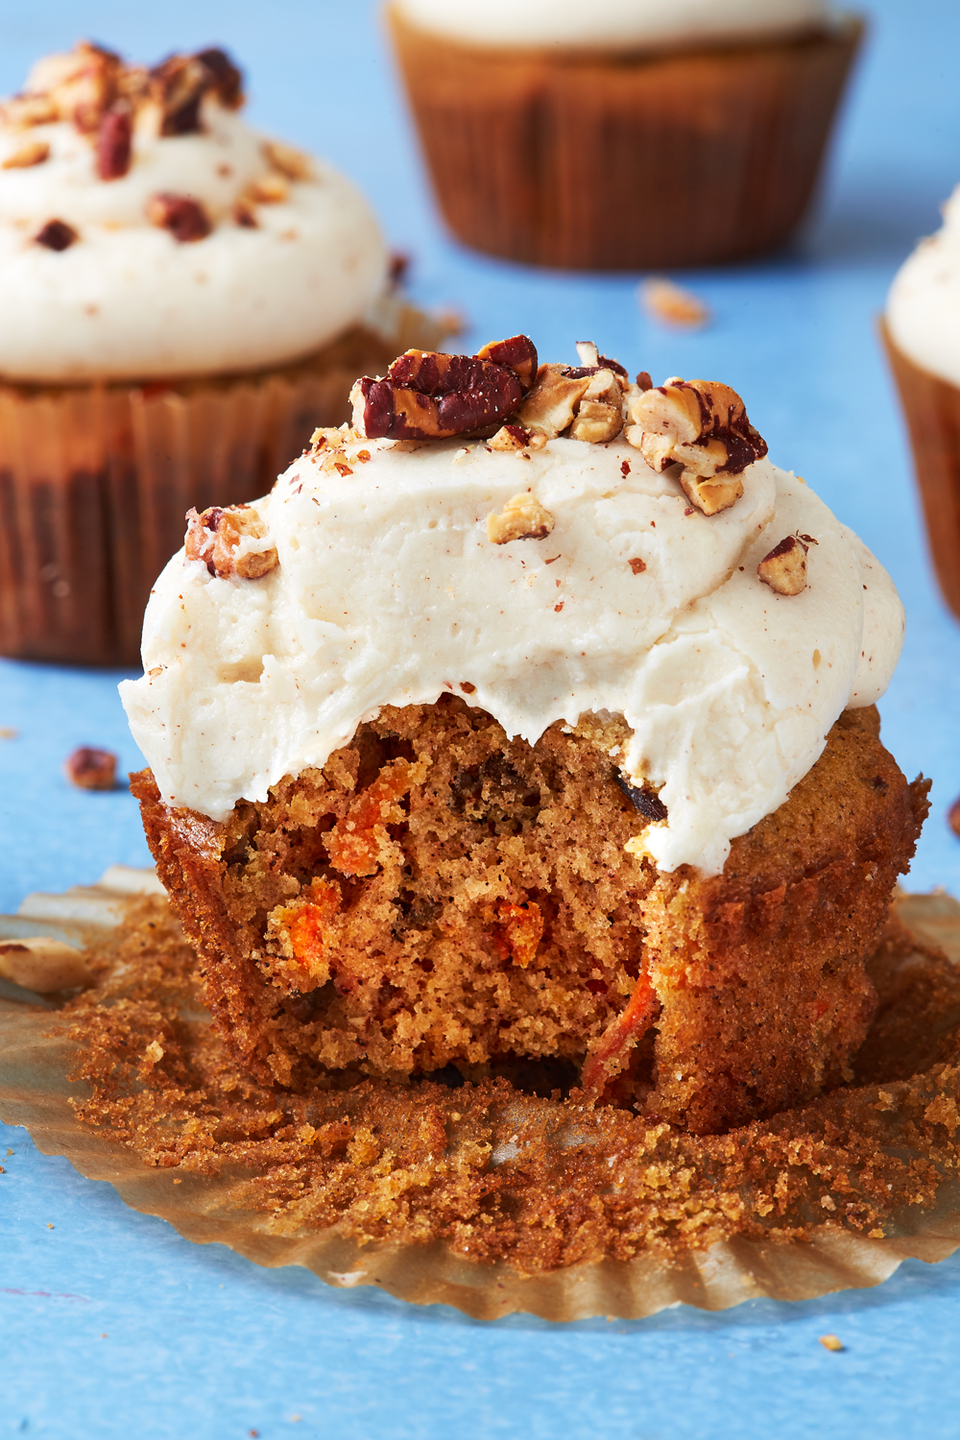 """<p>This way, you get even more frosting with each bite. 😉</p><p>Get the recipe from <a href=""""https://www.delish.com/cooking/recipe-ideas/recipes/a43390/carrot-cake-cupcakes-recipe/"""" rel=""""nofollow noopener"""" target=""""_blank"""" data-ylk=""""slk:Delish"""" class=""""link rapid-noclick-resp"""">Delish</a>.</p>"""